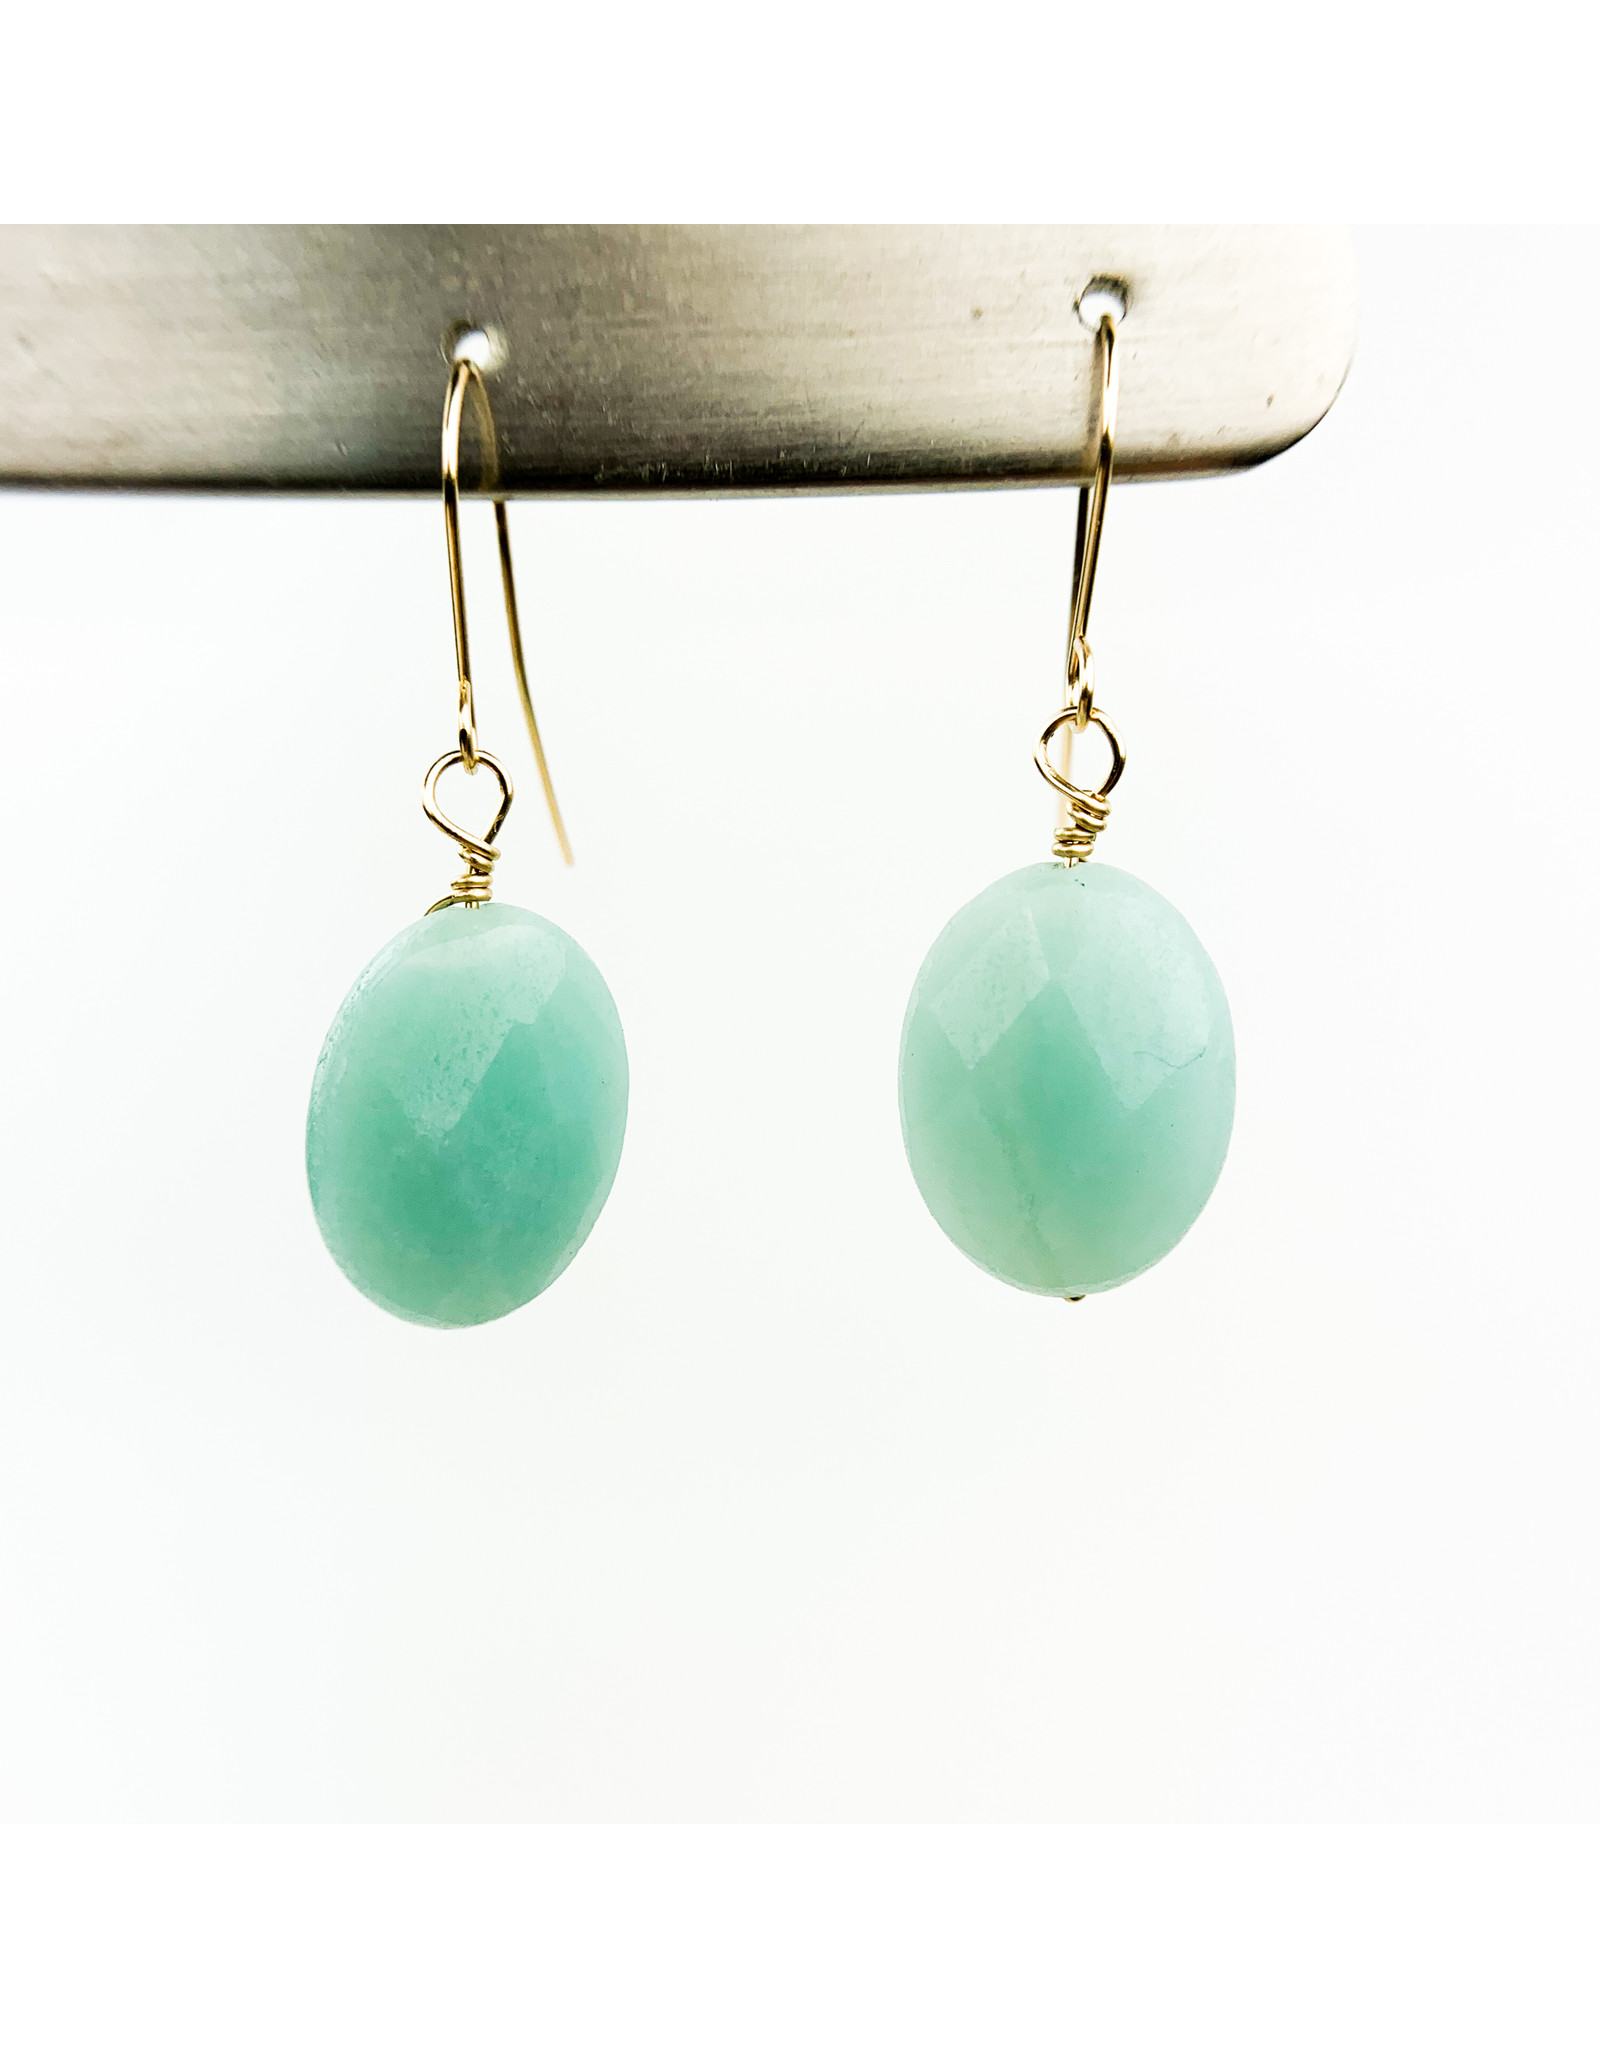 Nicole Collodoro Amazonite Faceted Oval Earrings Gold